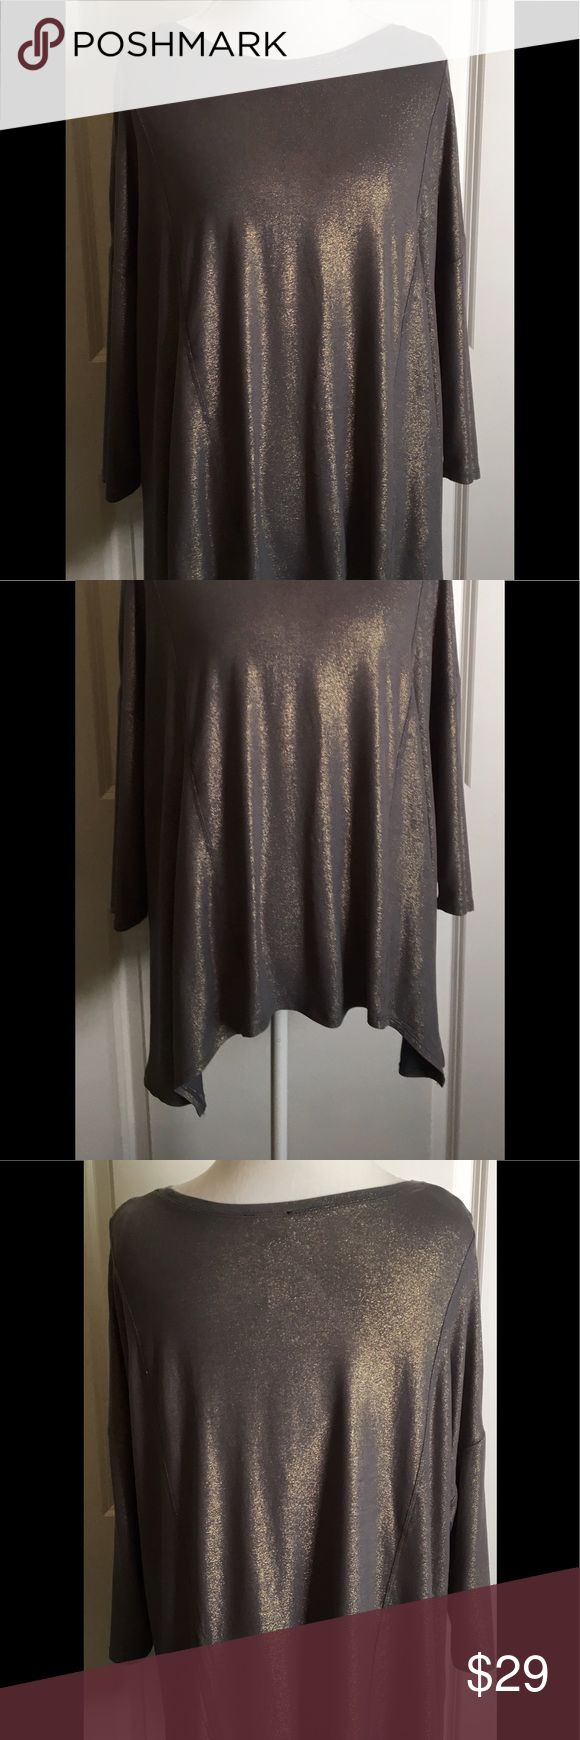 NWT IMAN Global Chic Top NWT IMAN Global Chic Top. 3/4 batwing sleeves. Grey with copper running through the material. Gorgeous slinky and sexy material. Iman  Tops